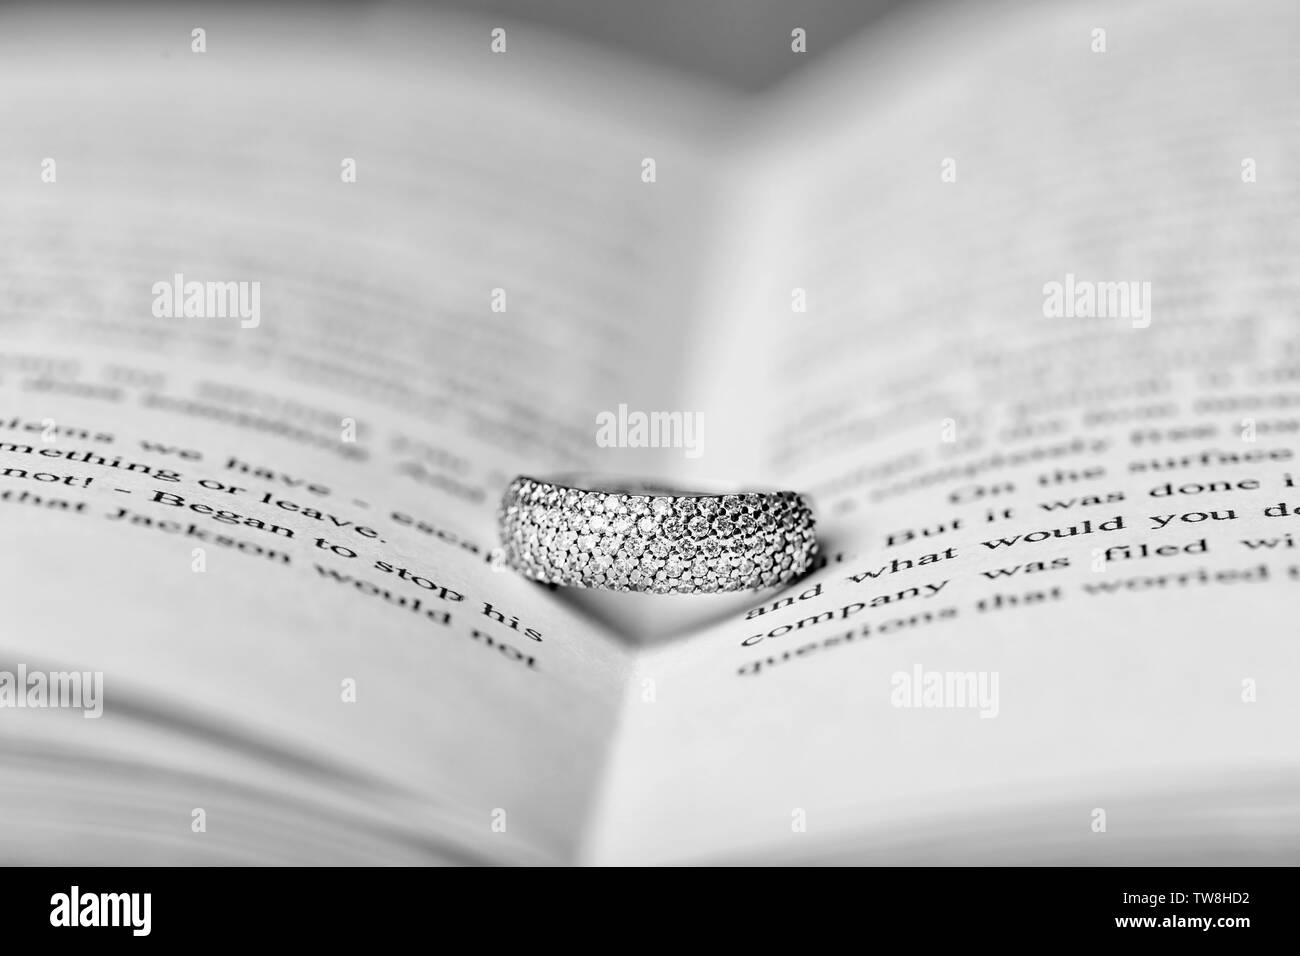 Engagement ring between pages of book, closeup - Stock Image